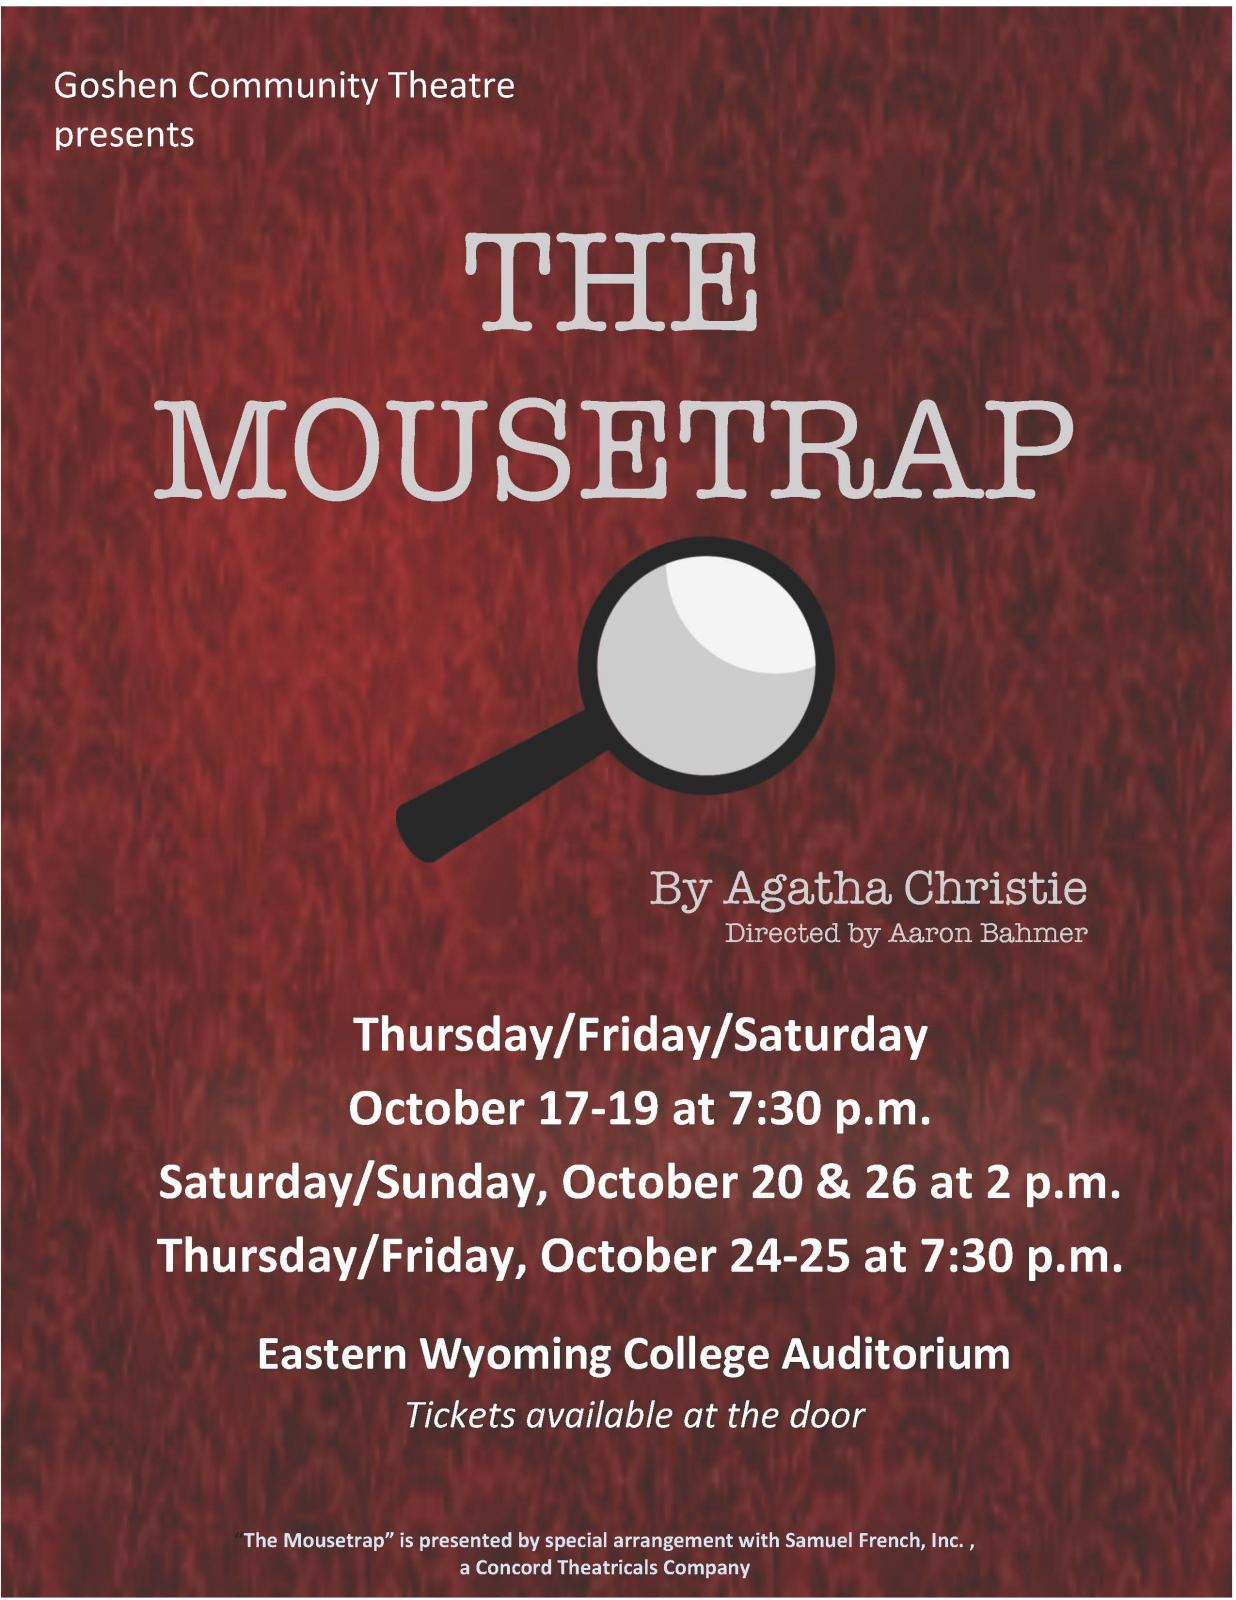 Event Promo Photo For The Mousetrap